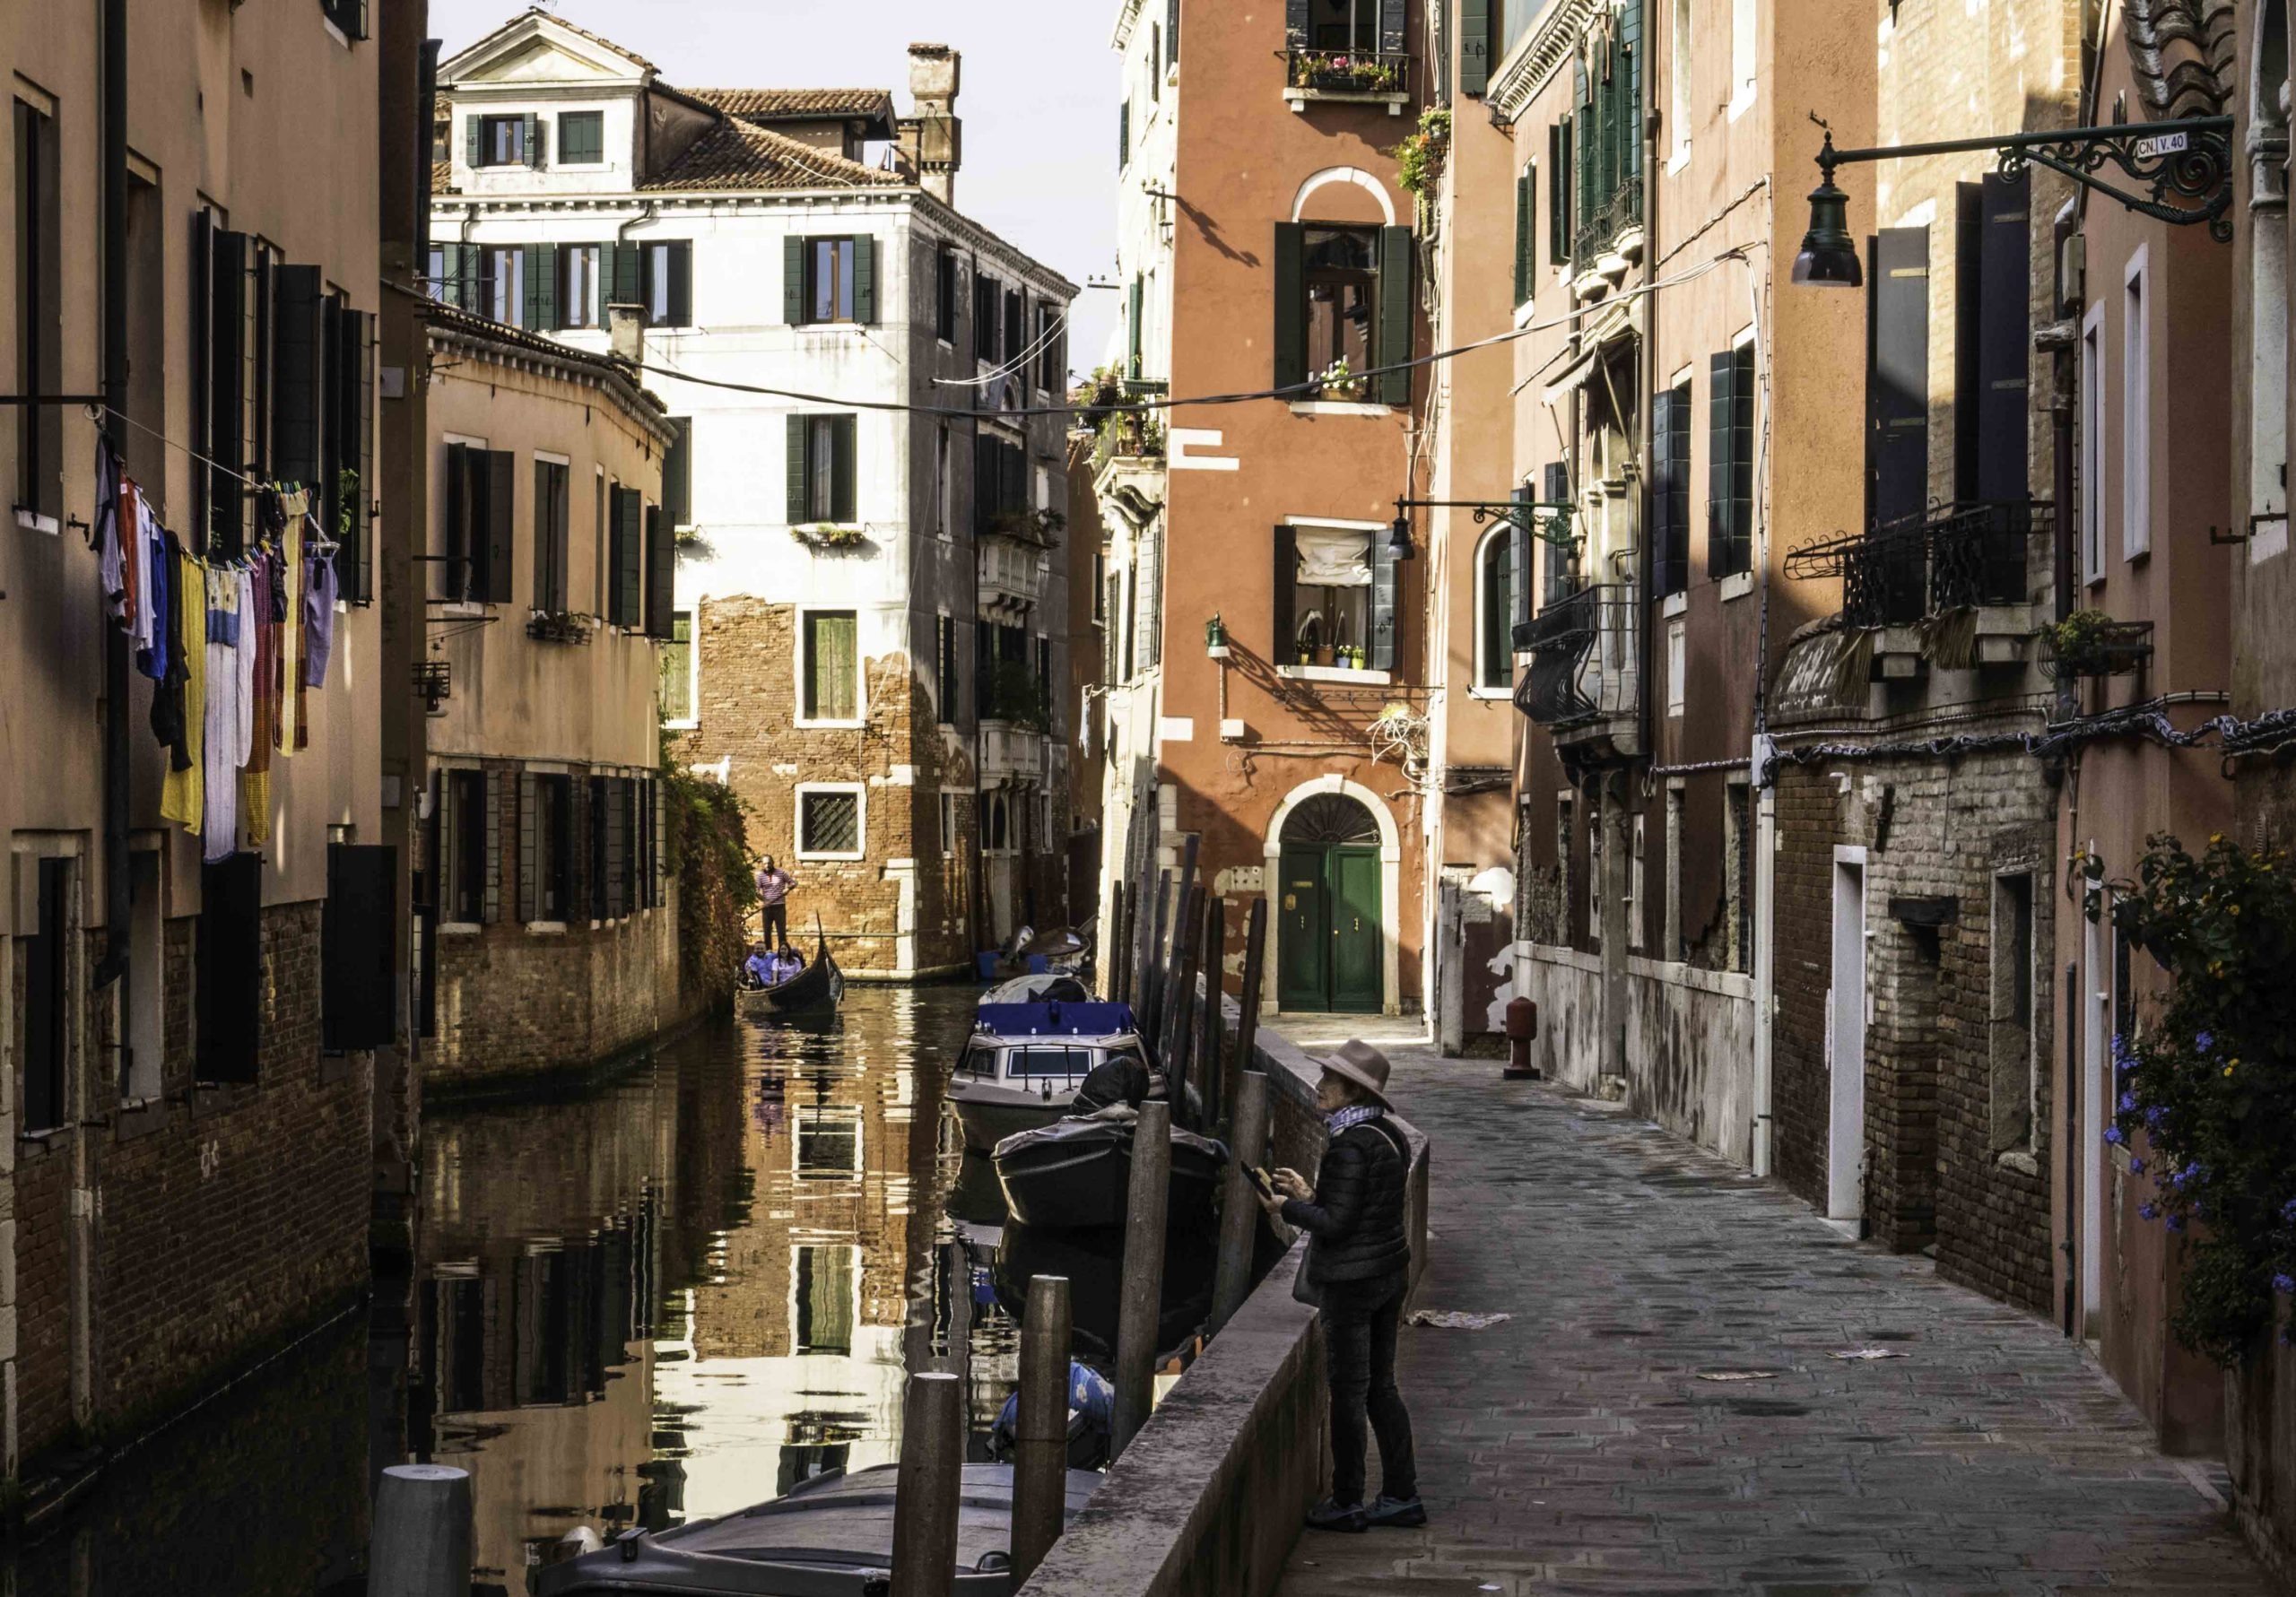 Neighborhood canal, Venice, Italy